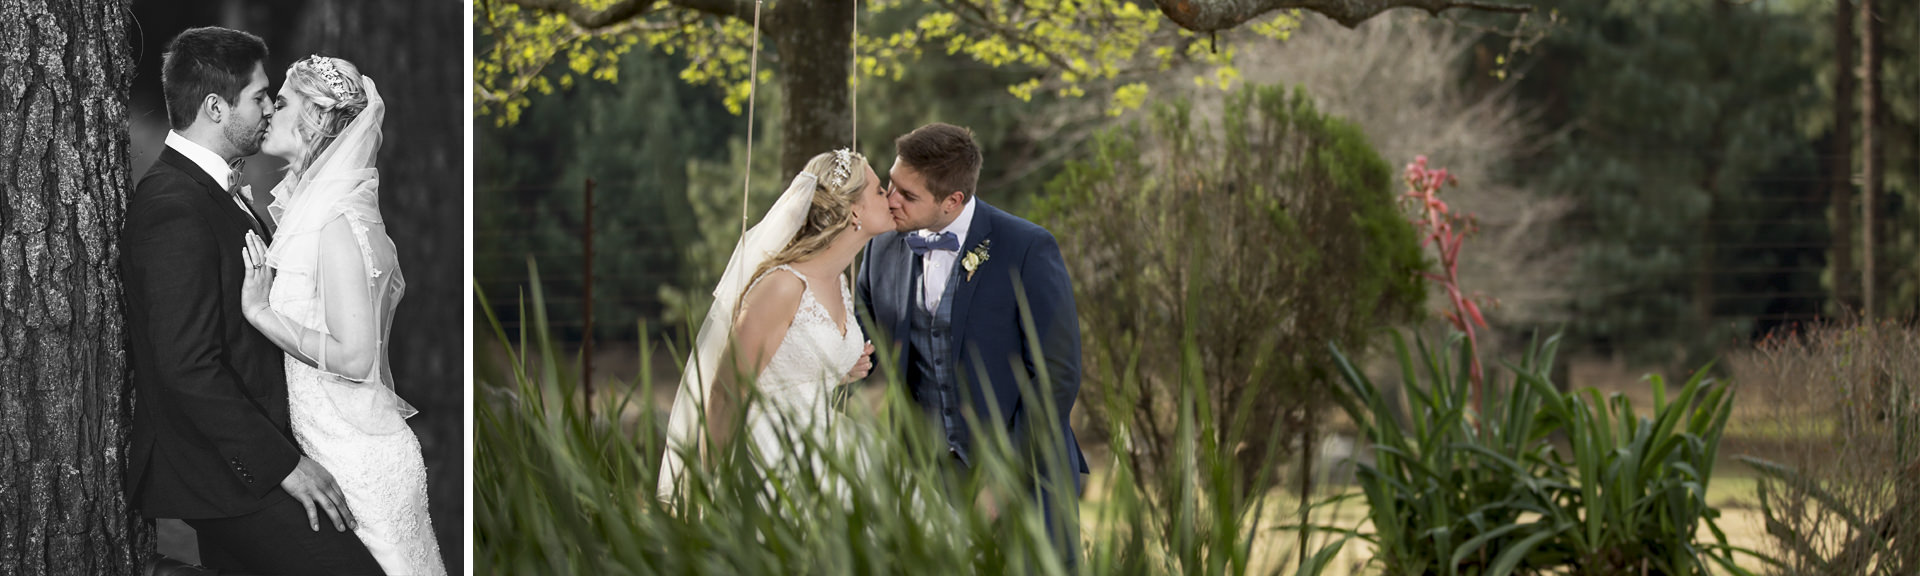 henry-summers-photography-best-wedding-photographer-durban-weddings-gillitts-kwa-zulu-natal-portfolio-wedding-photos